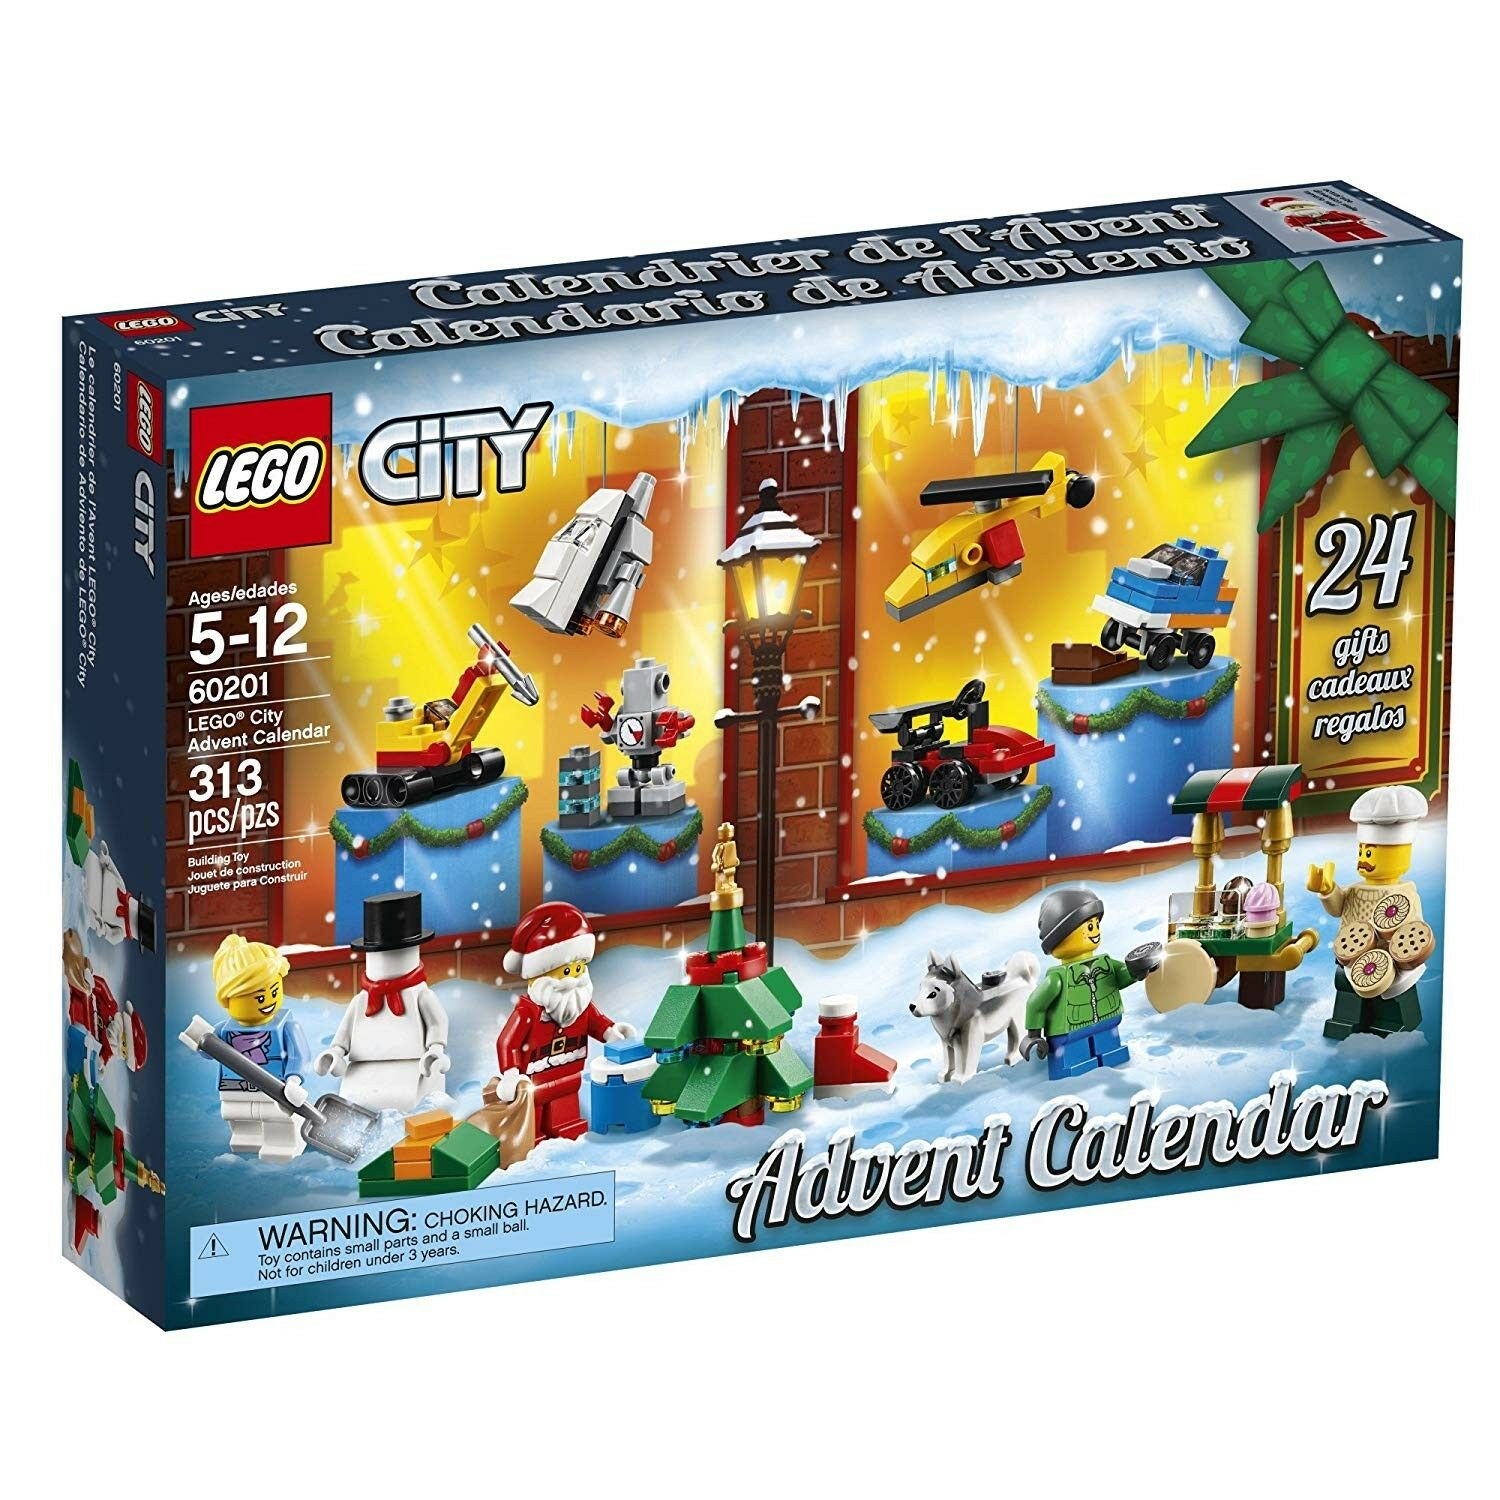 nuovo  Lego città Advent Calendar set 2018 Mini cifras Christmas  60201 Limited ed.  vendite online